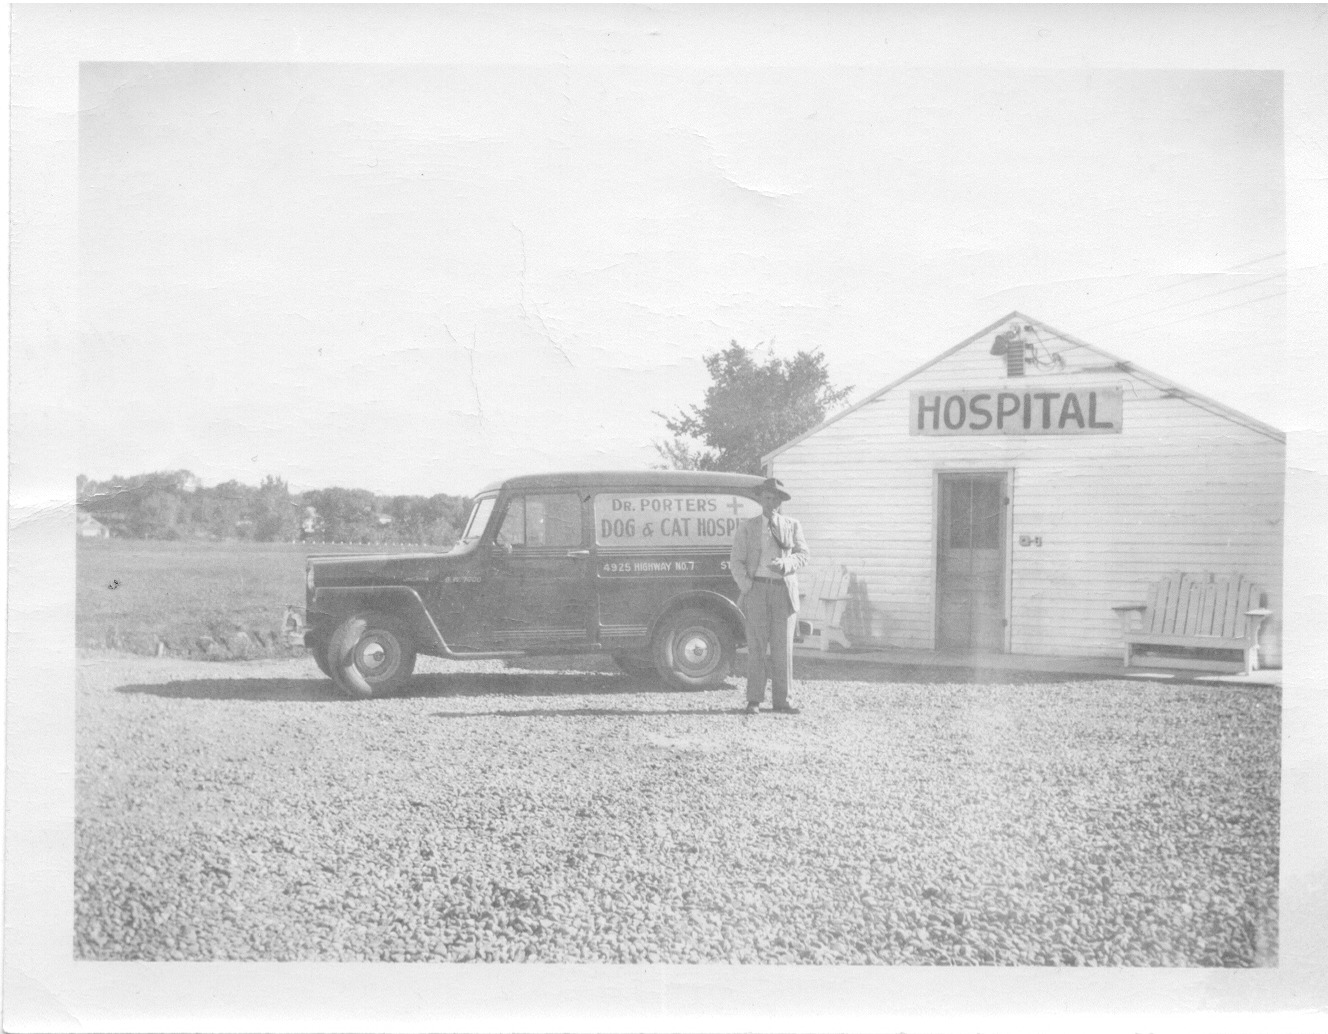 Dr. Porter Sr. standing next to the mobile veterinary truck in front of the temporary Park Pet Hospital Building